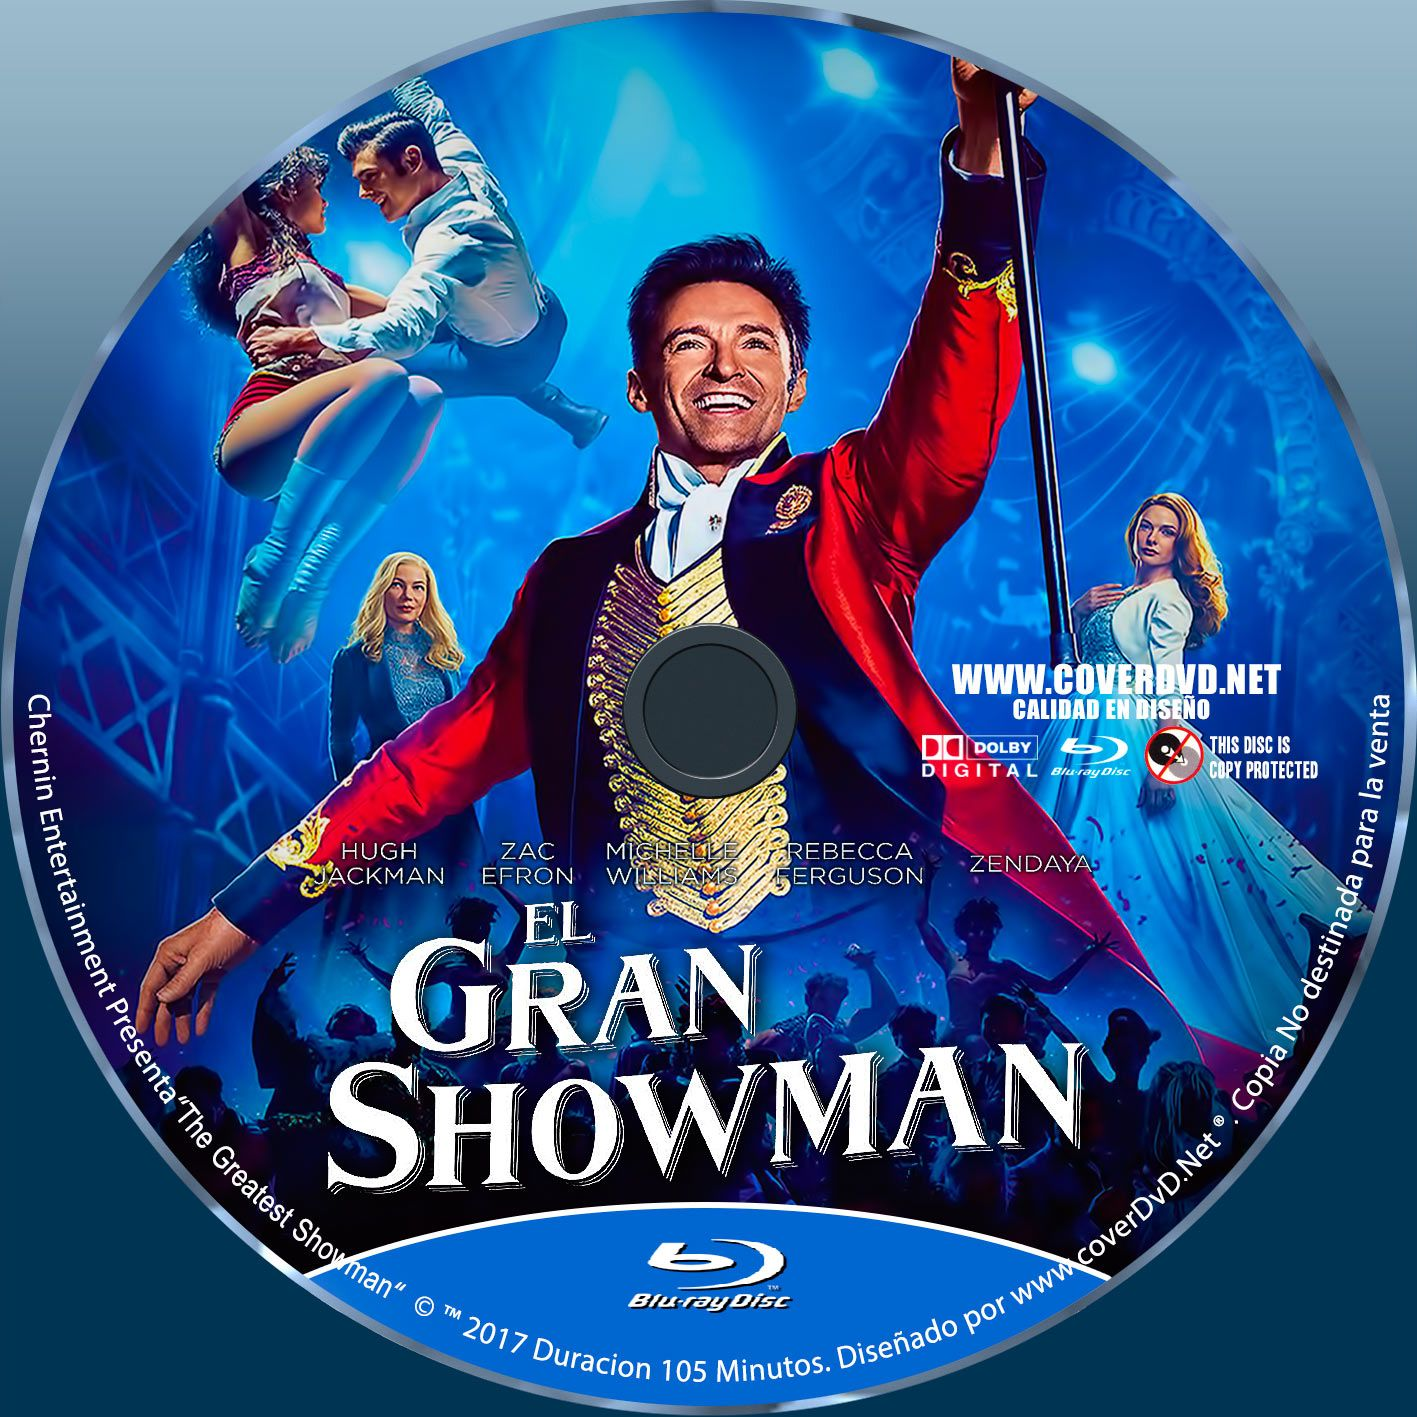 The Greatest Showman Label Bluray The Greatest Showman Greatful Blu Ray